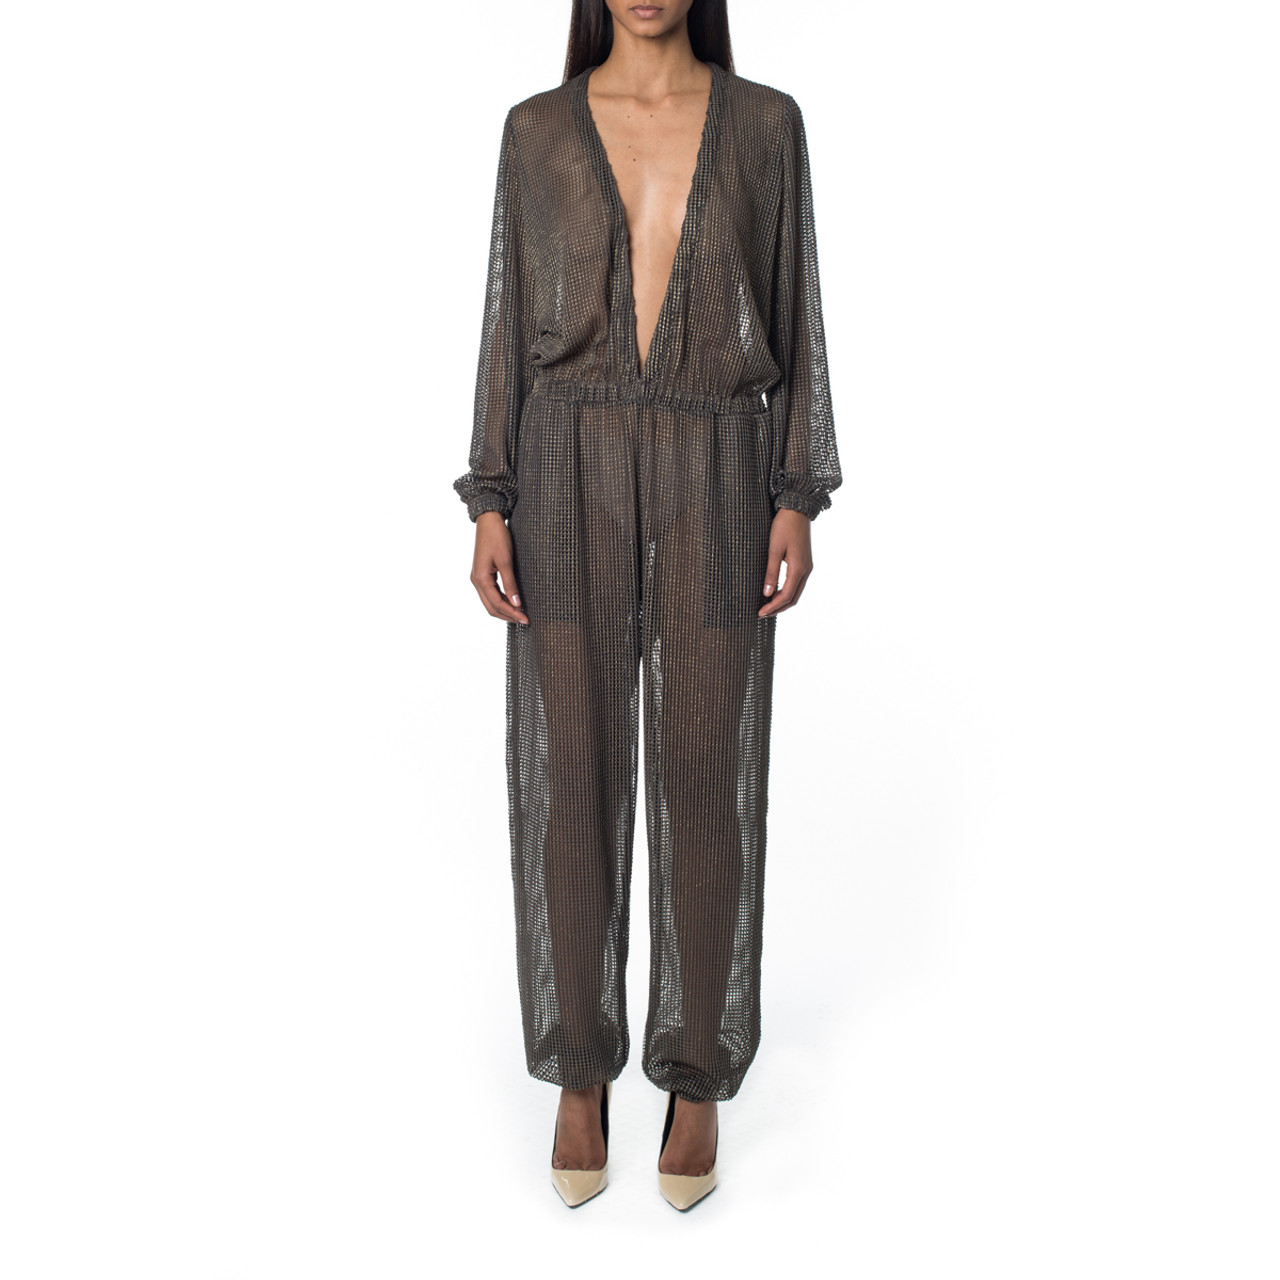 St. Barths Jumpsuit in Foil